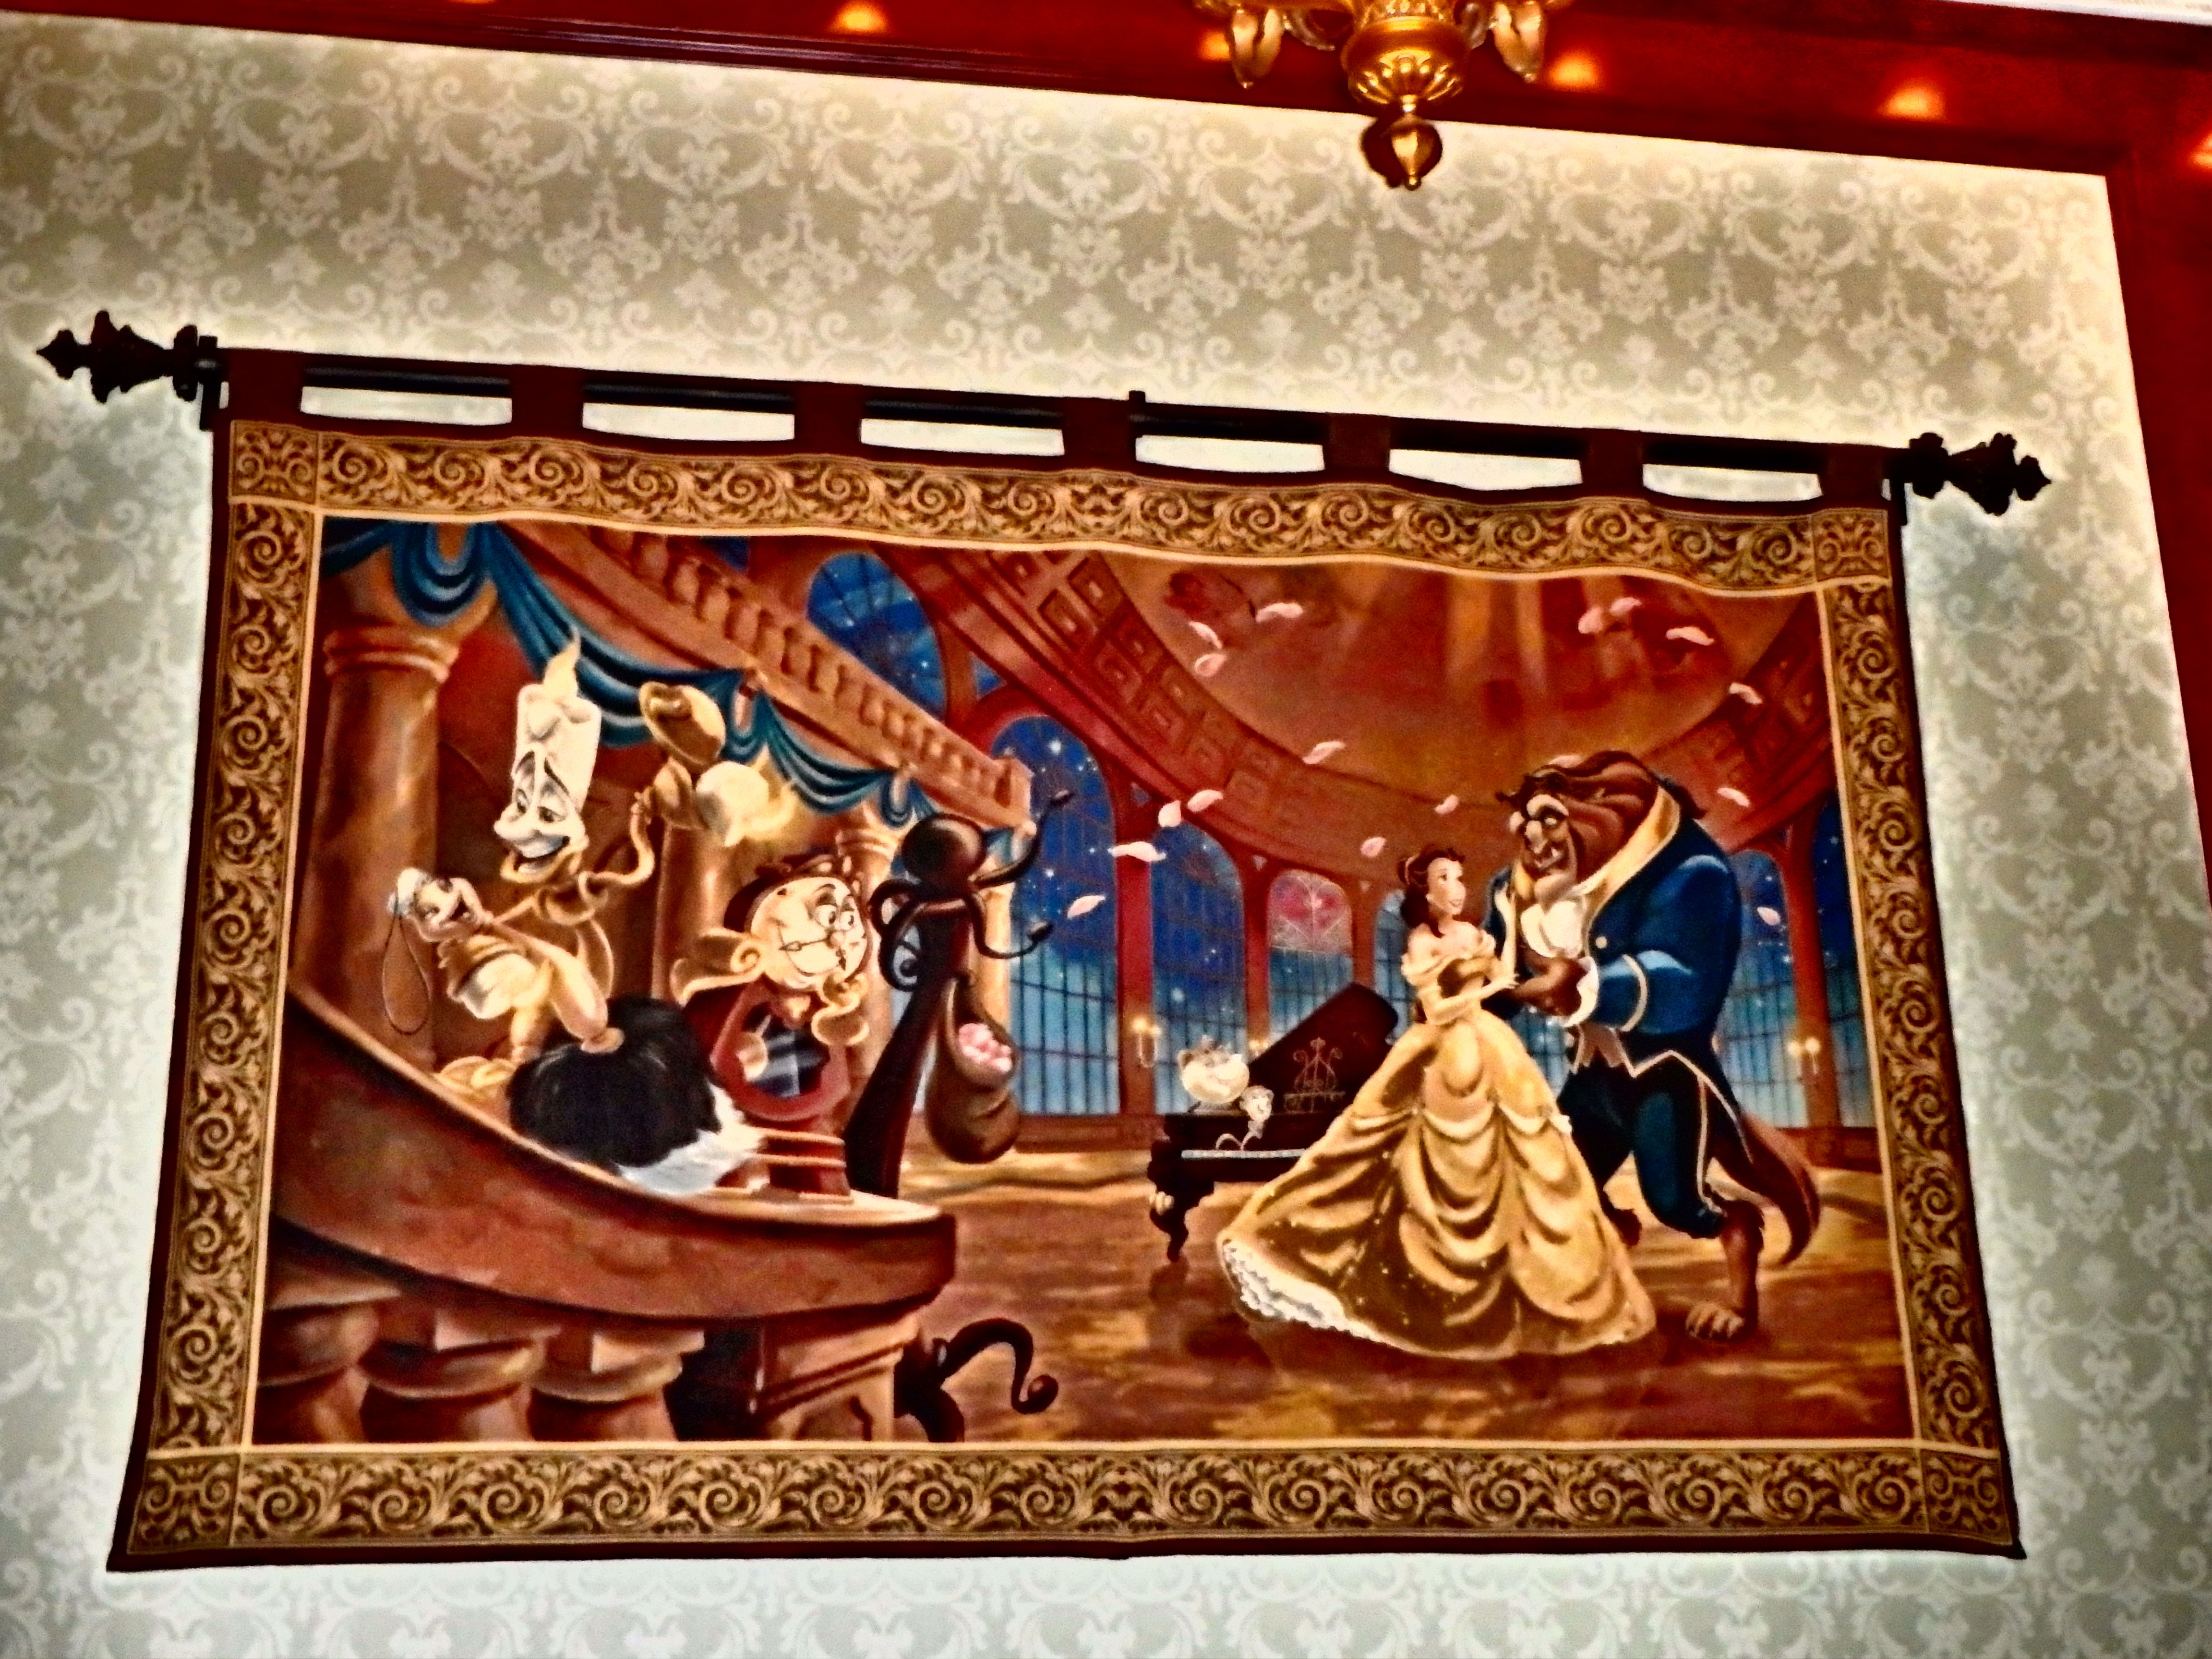 Beauty And The Beast Tapestry Inside Be Our Guest Restaurant In Disney World Fantasy Land Disney Magic Disney World Fantasyland